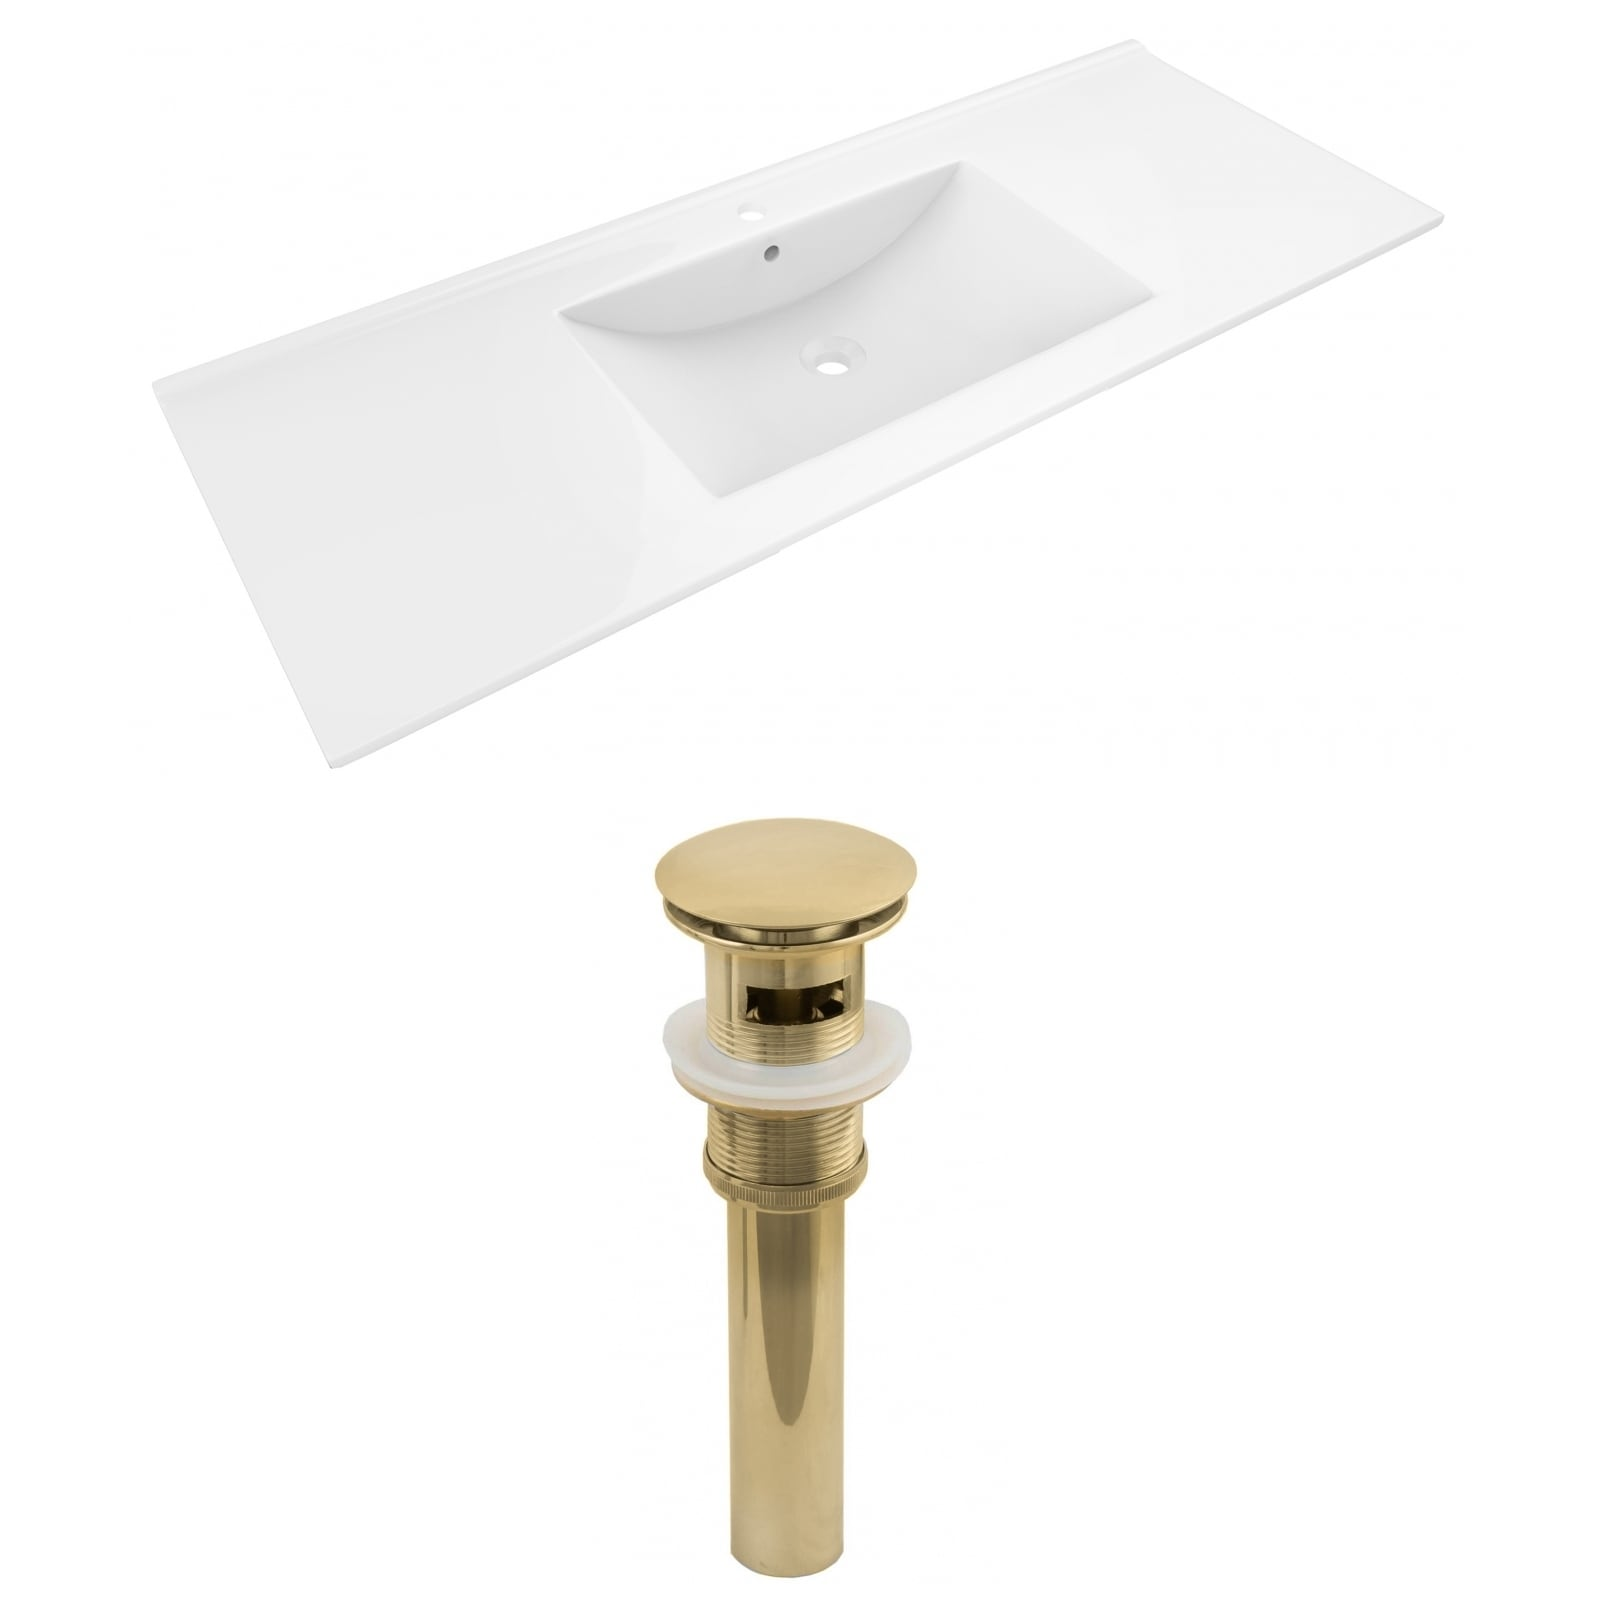 48-in. W 1 Hole Ceramic Top Set In White Color - Overflow Drain Incl.